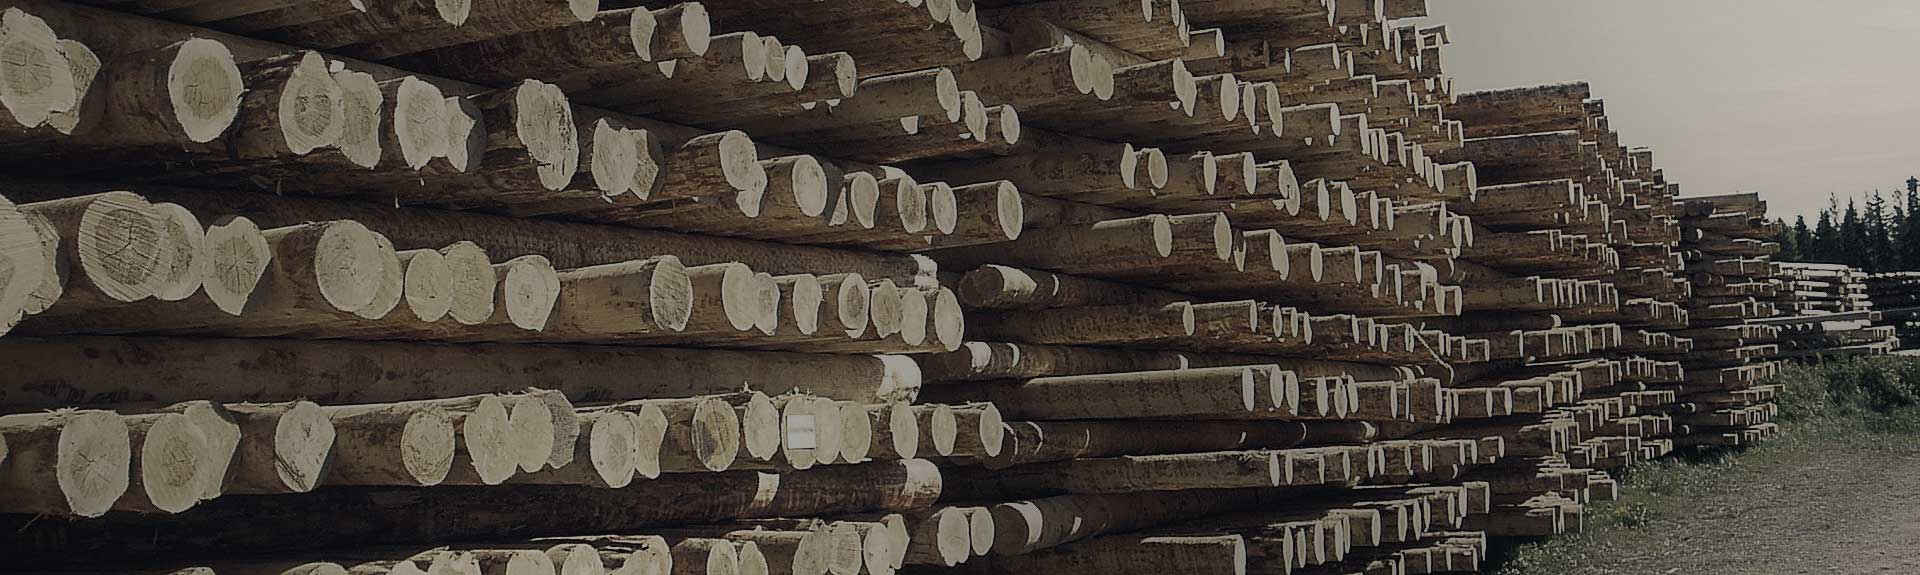 High Quality Wooden Utility Poles!